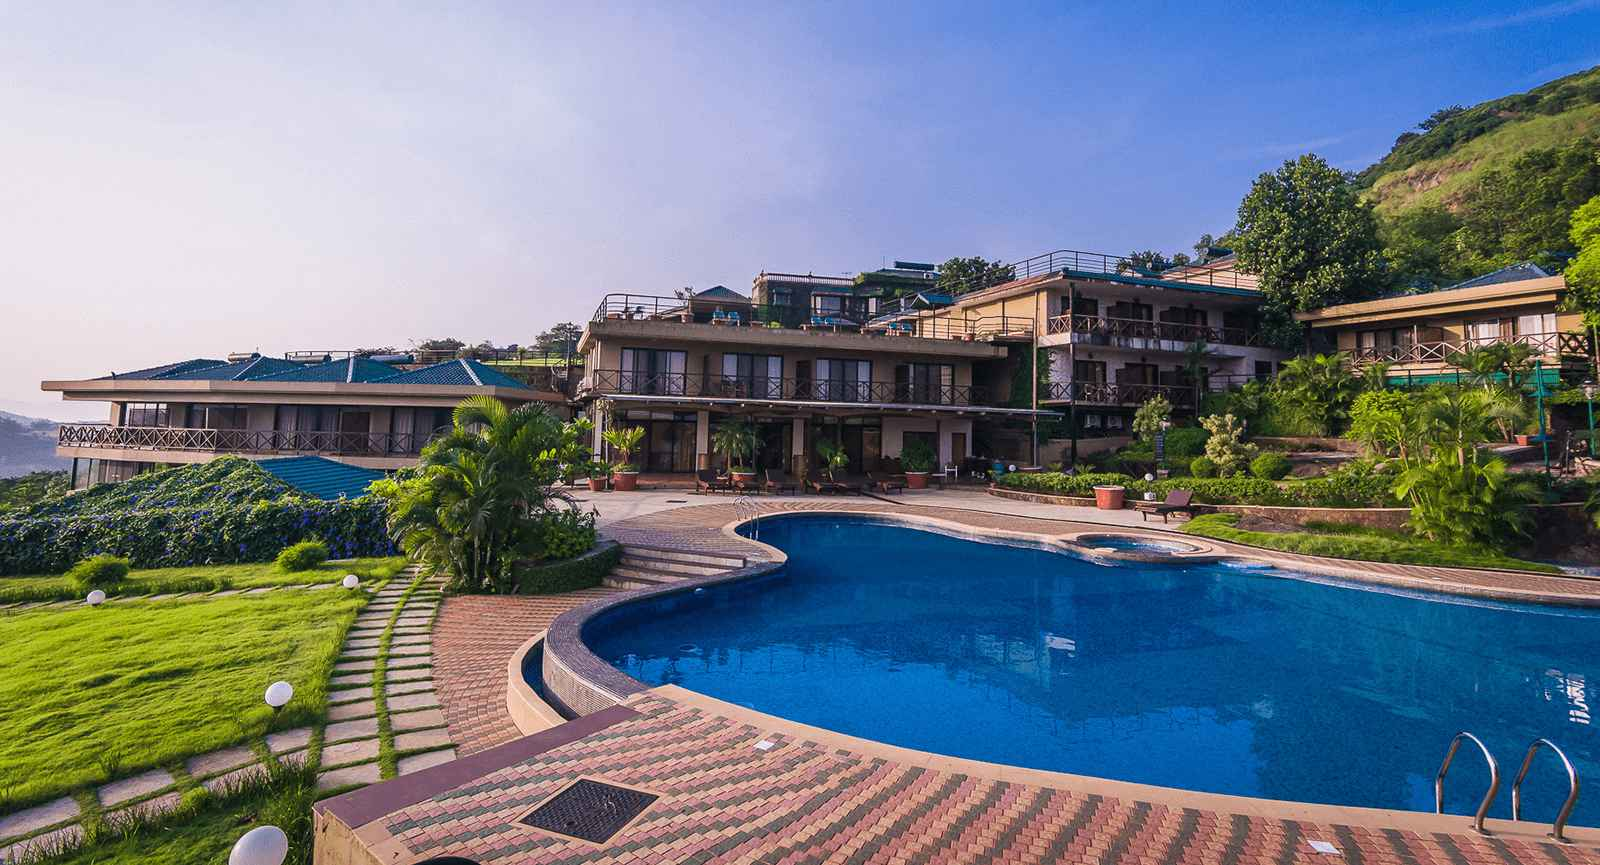 Best Hotels & Resorts In Lonavala - Upper Deck Resort